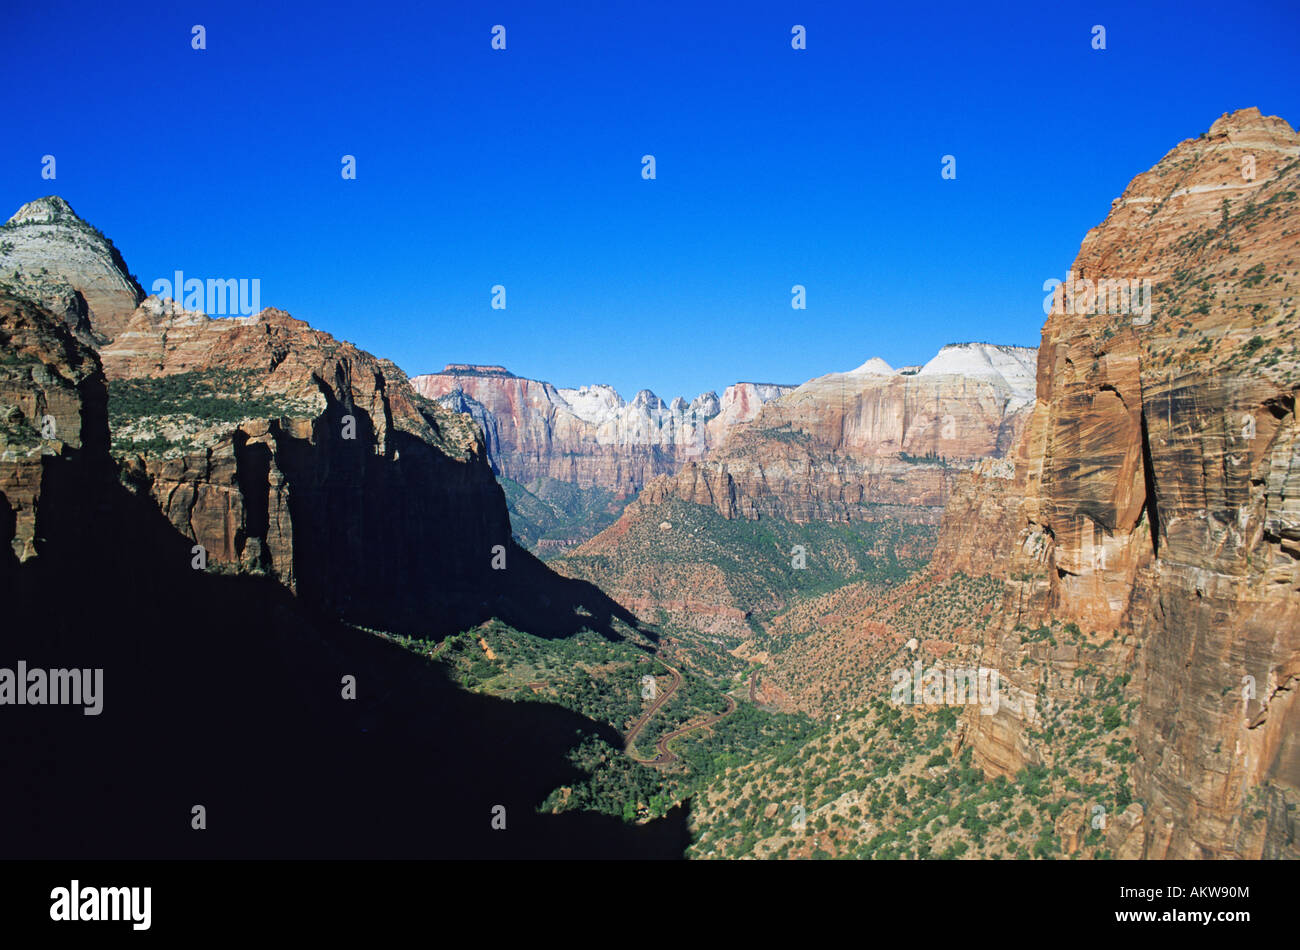 Unites States, Utah, Zion National Park, view of rock formations seen from Angels Landing - Stock Image